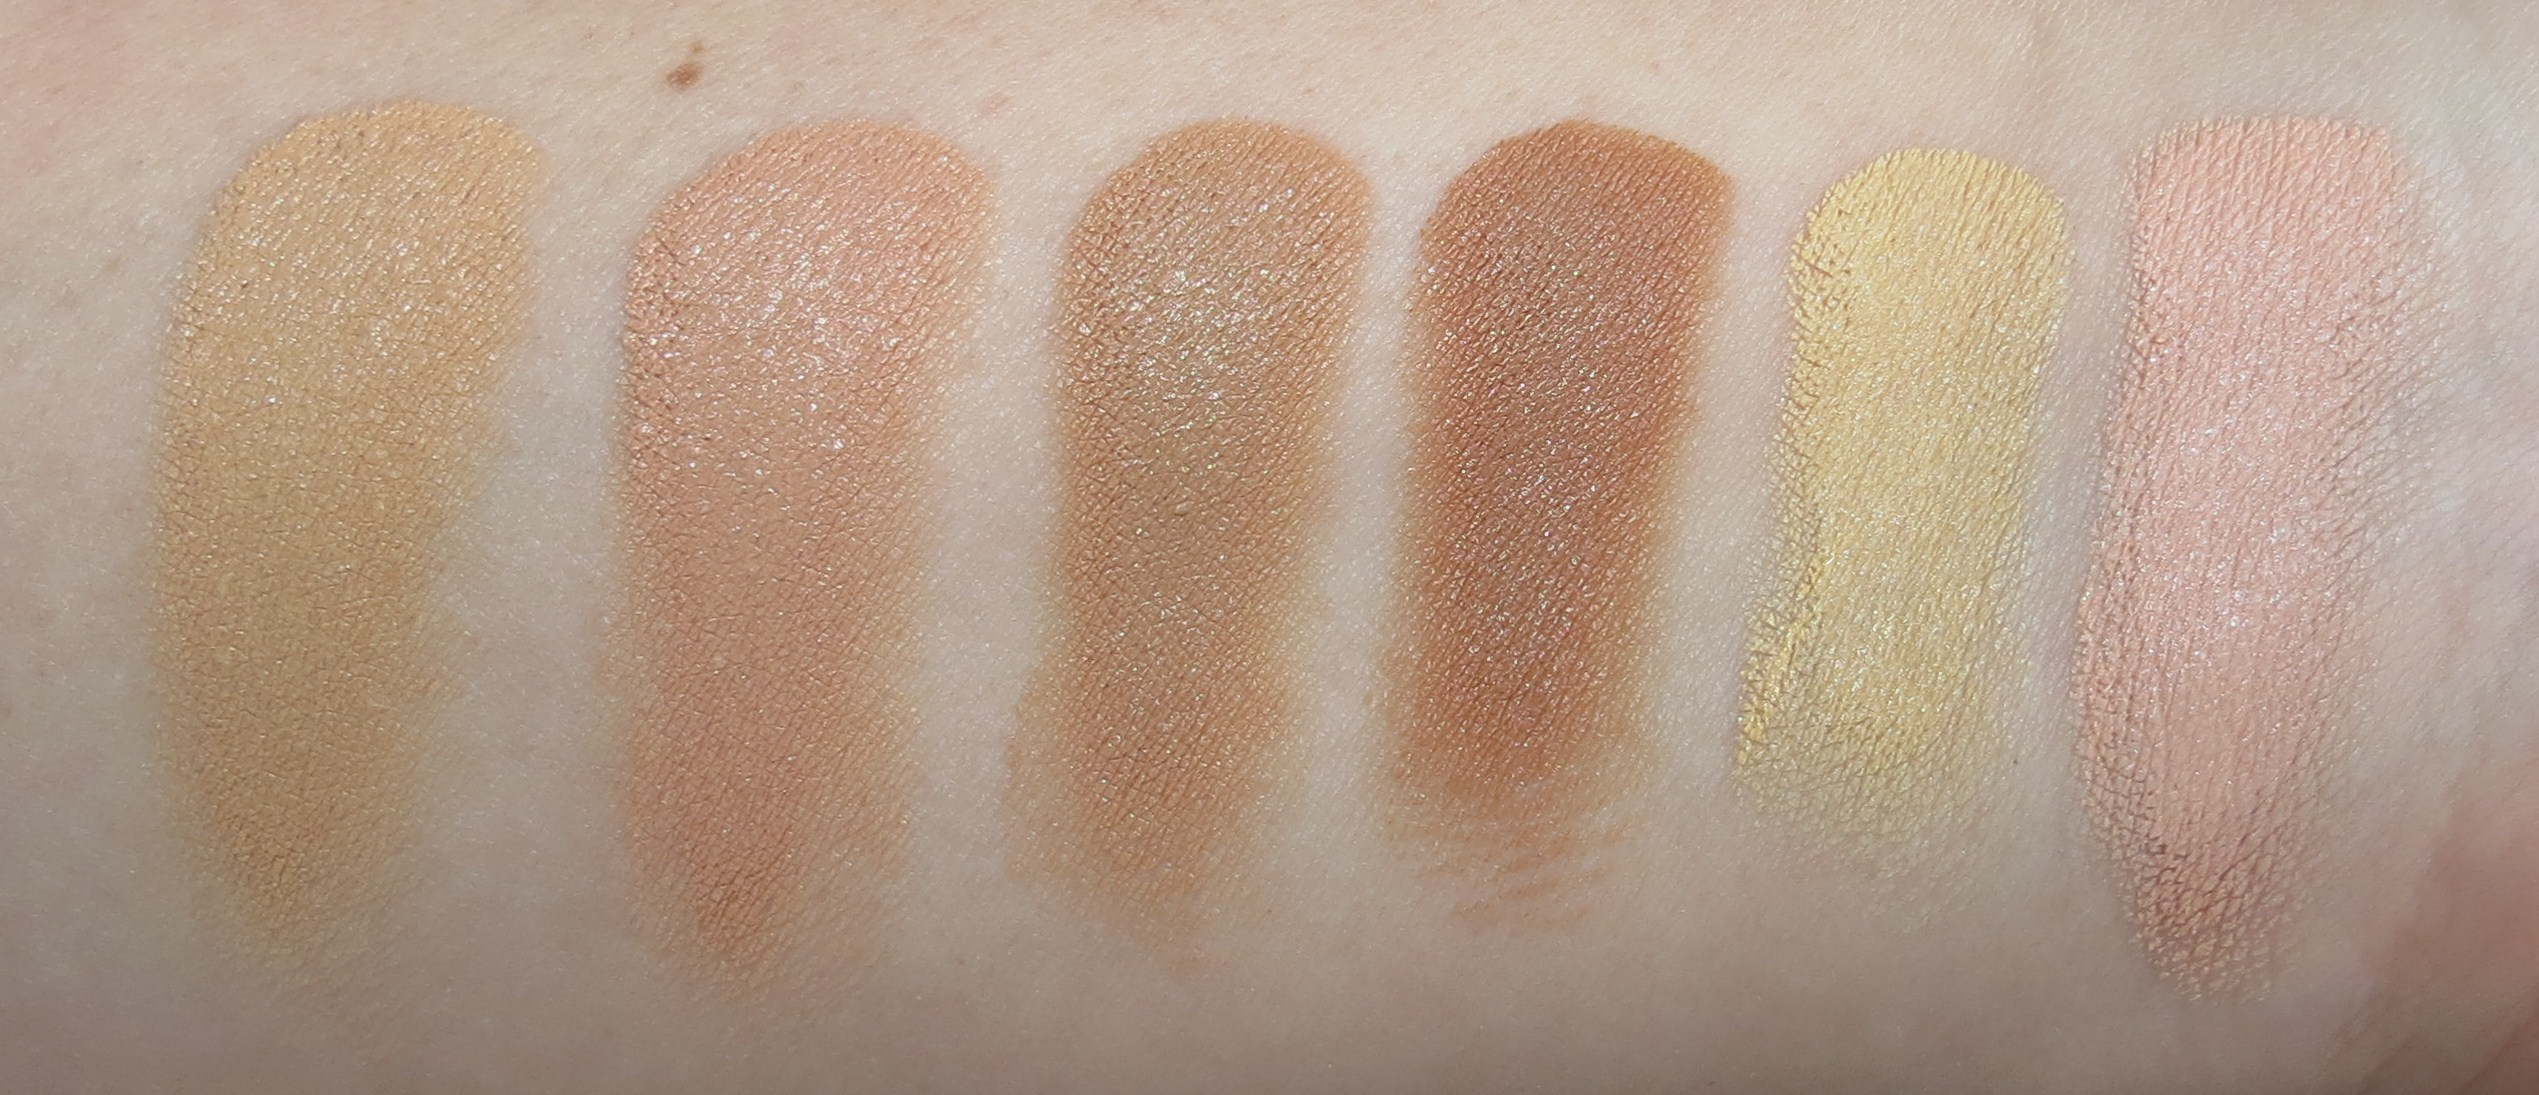 Conceal And Correct Palette by MAC #3